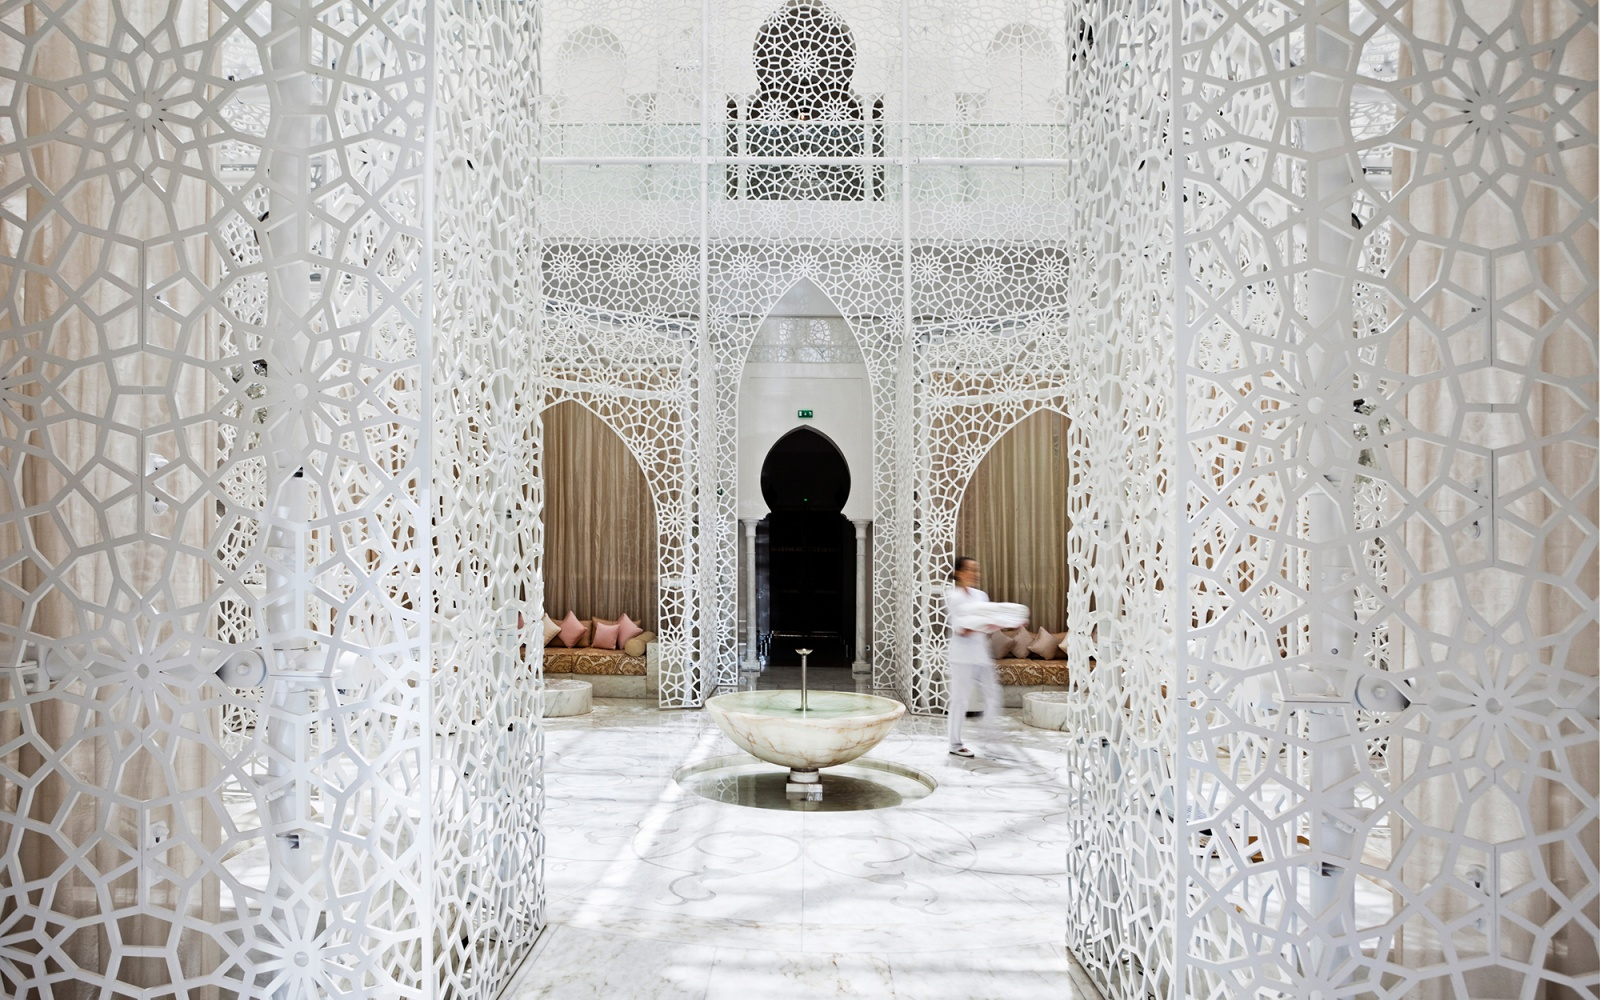 T+L's Definitive Guide to Marrakesh